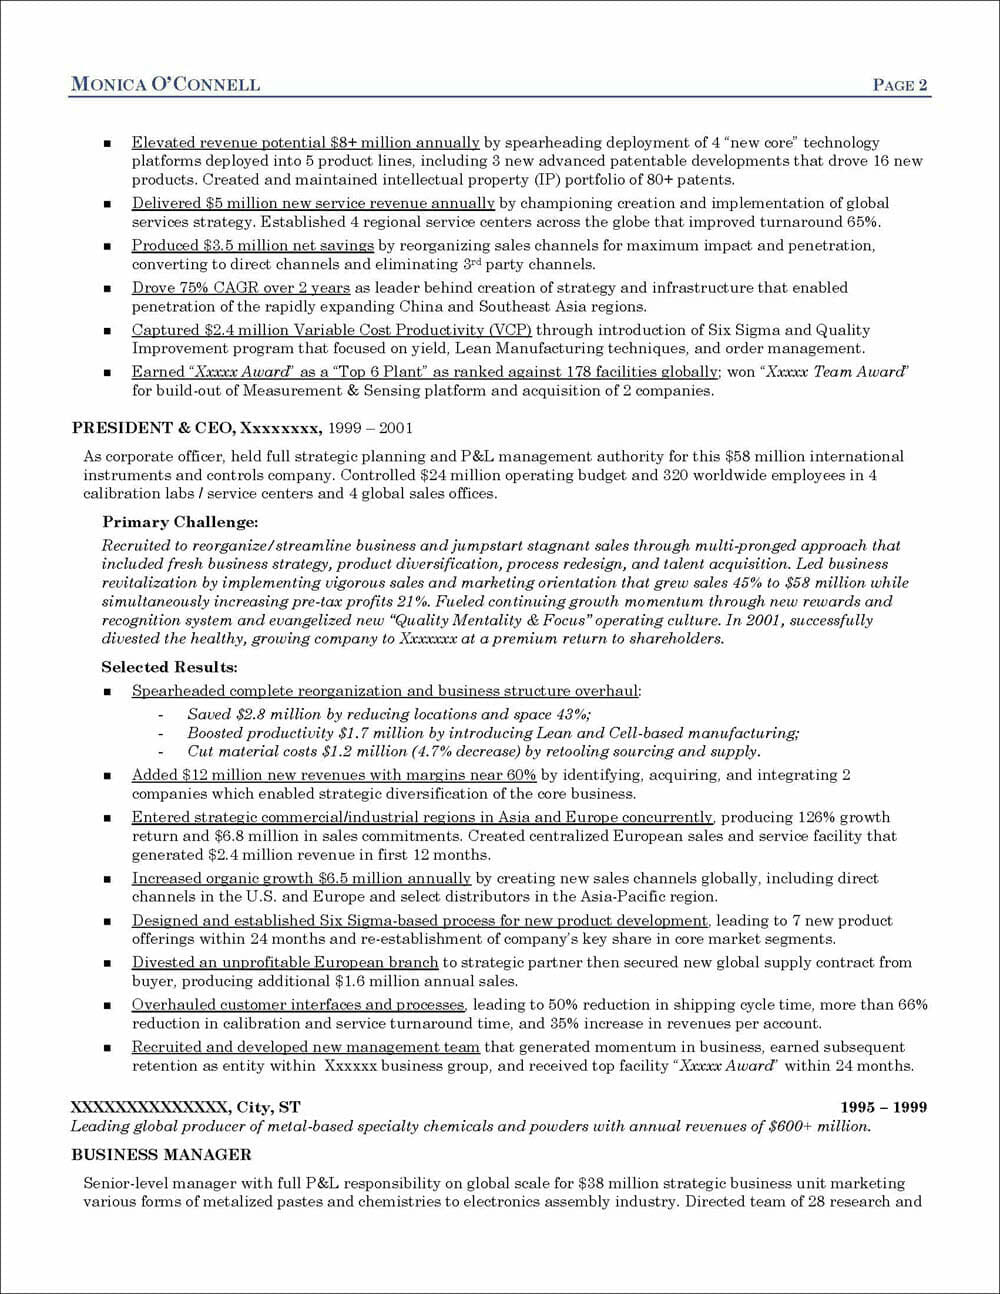 Executive Resume For A President And Ceo